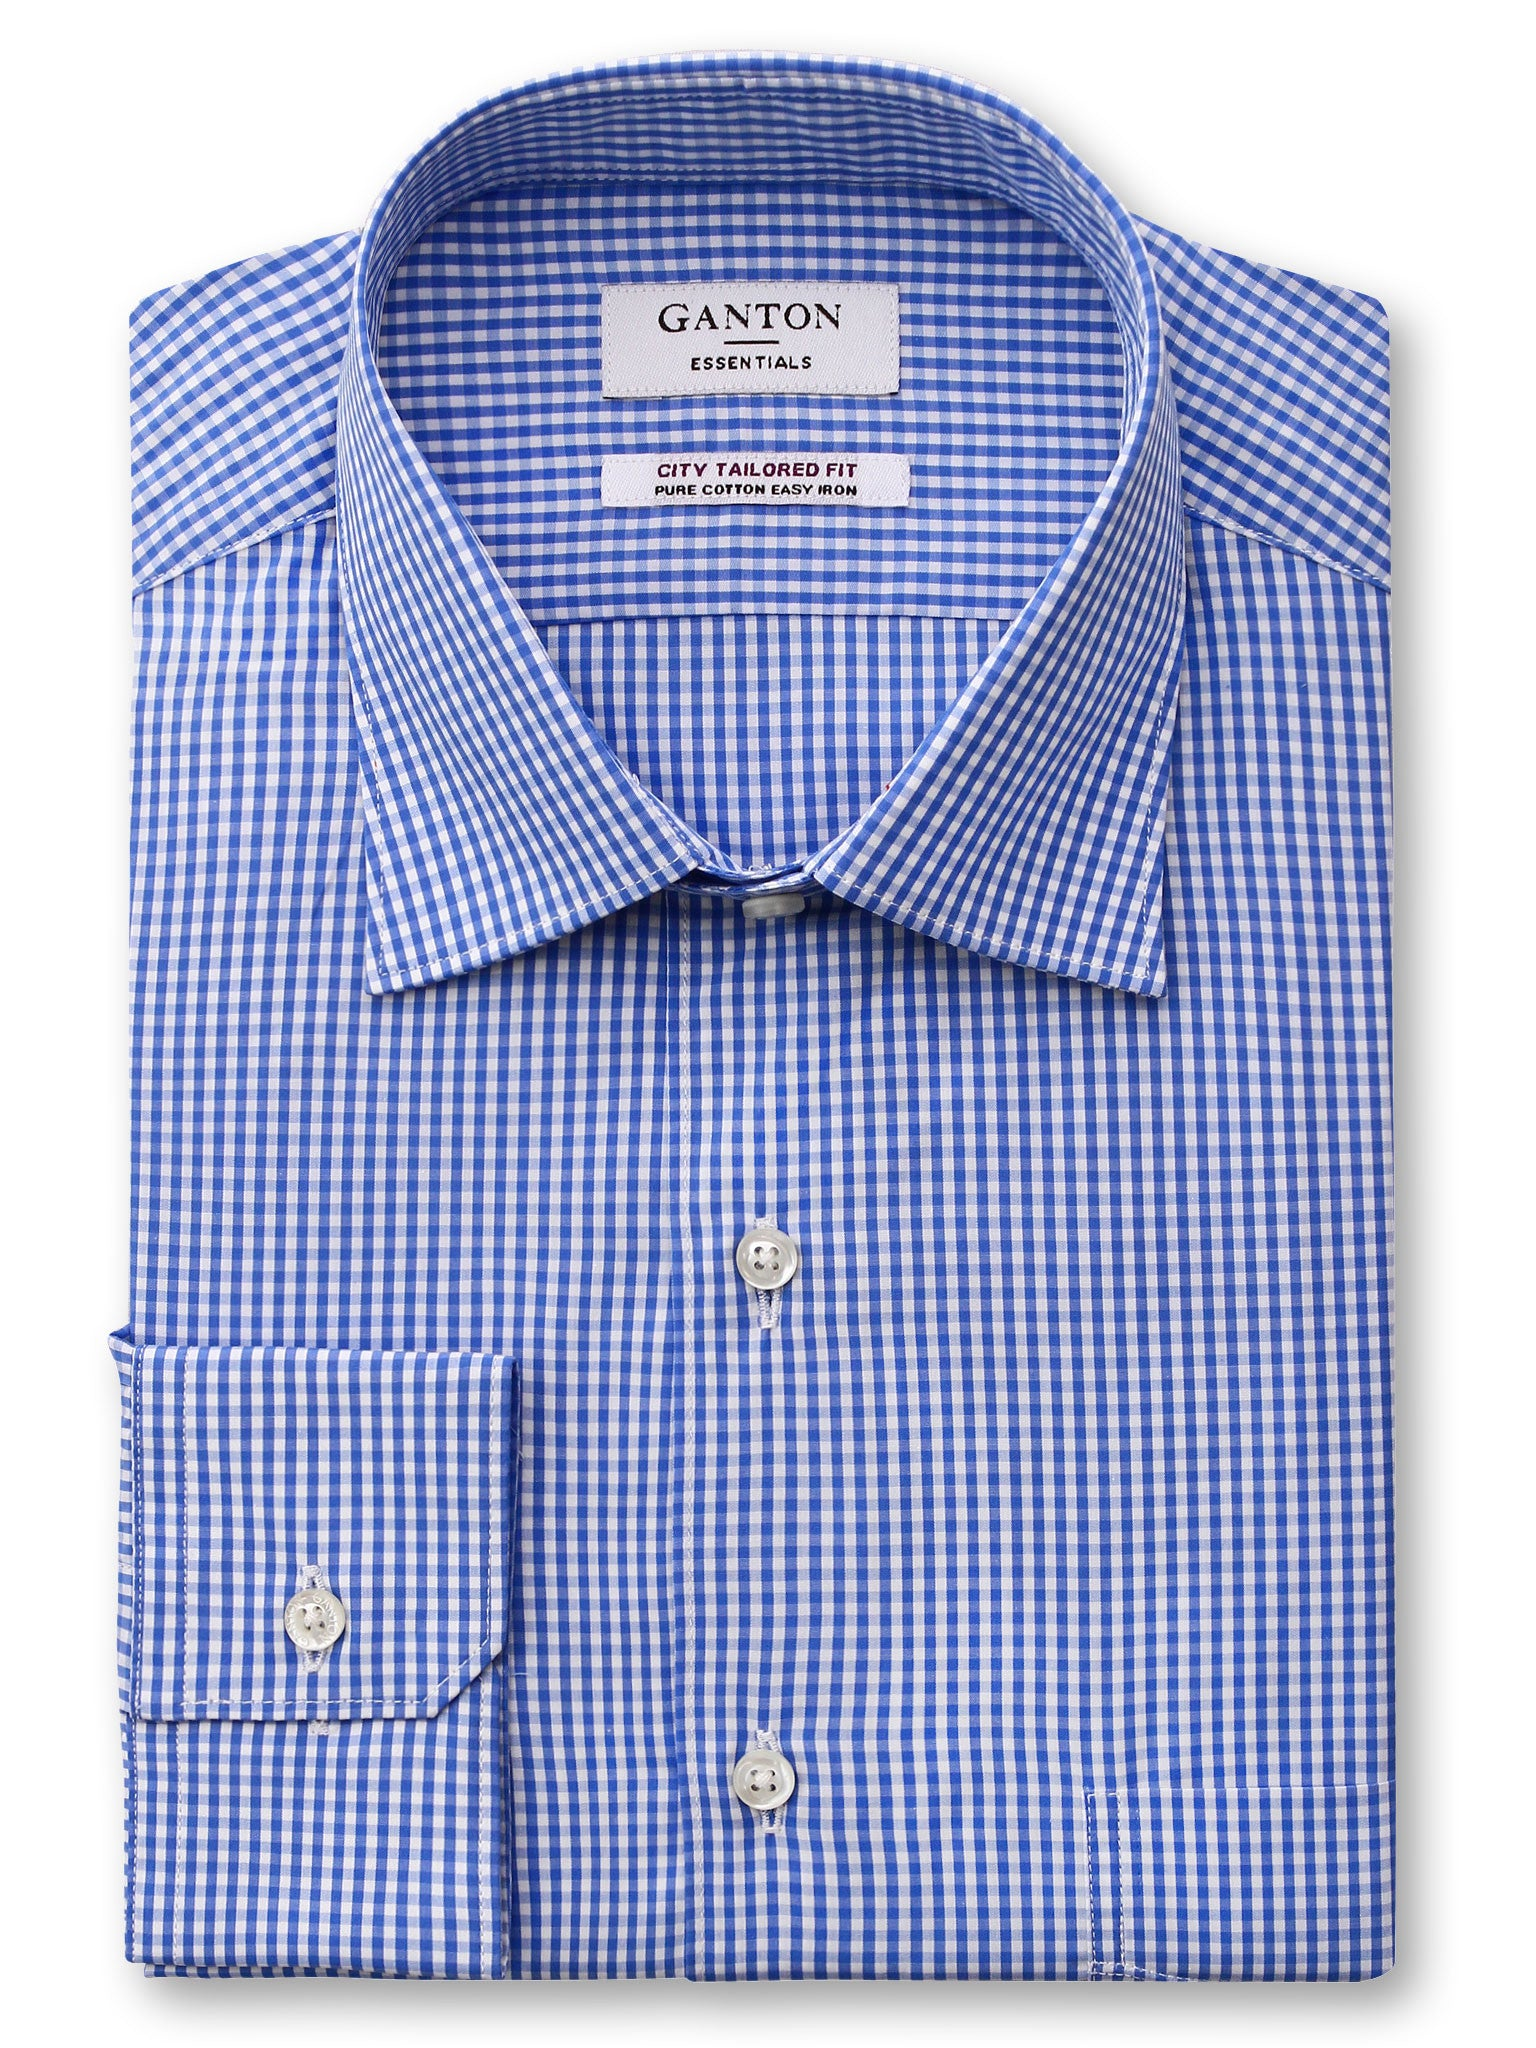 Blue Check Tailored Fit Emery Superfine Cotton Easy Iron Essentials Shirt